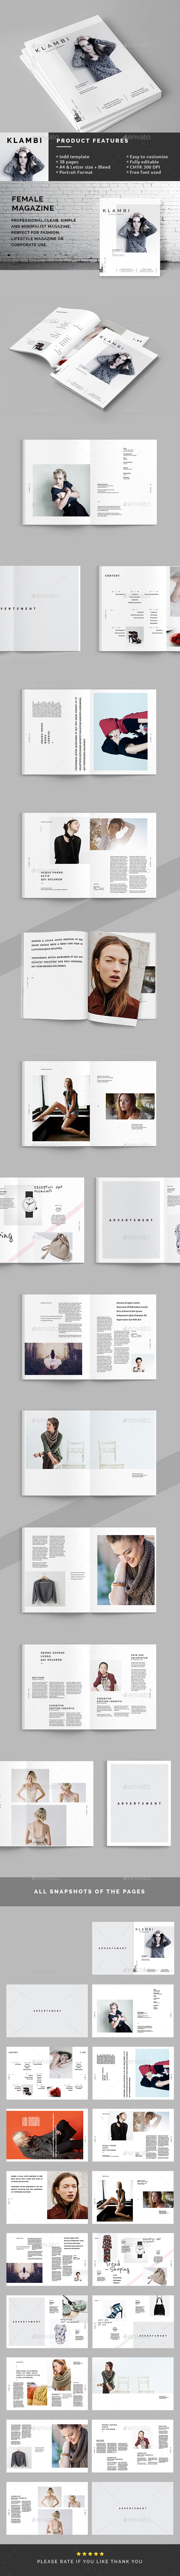 Female Magazine Template - Magazines Print Templates